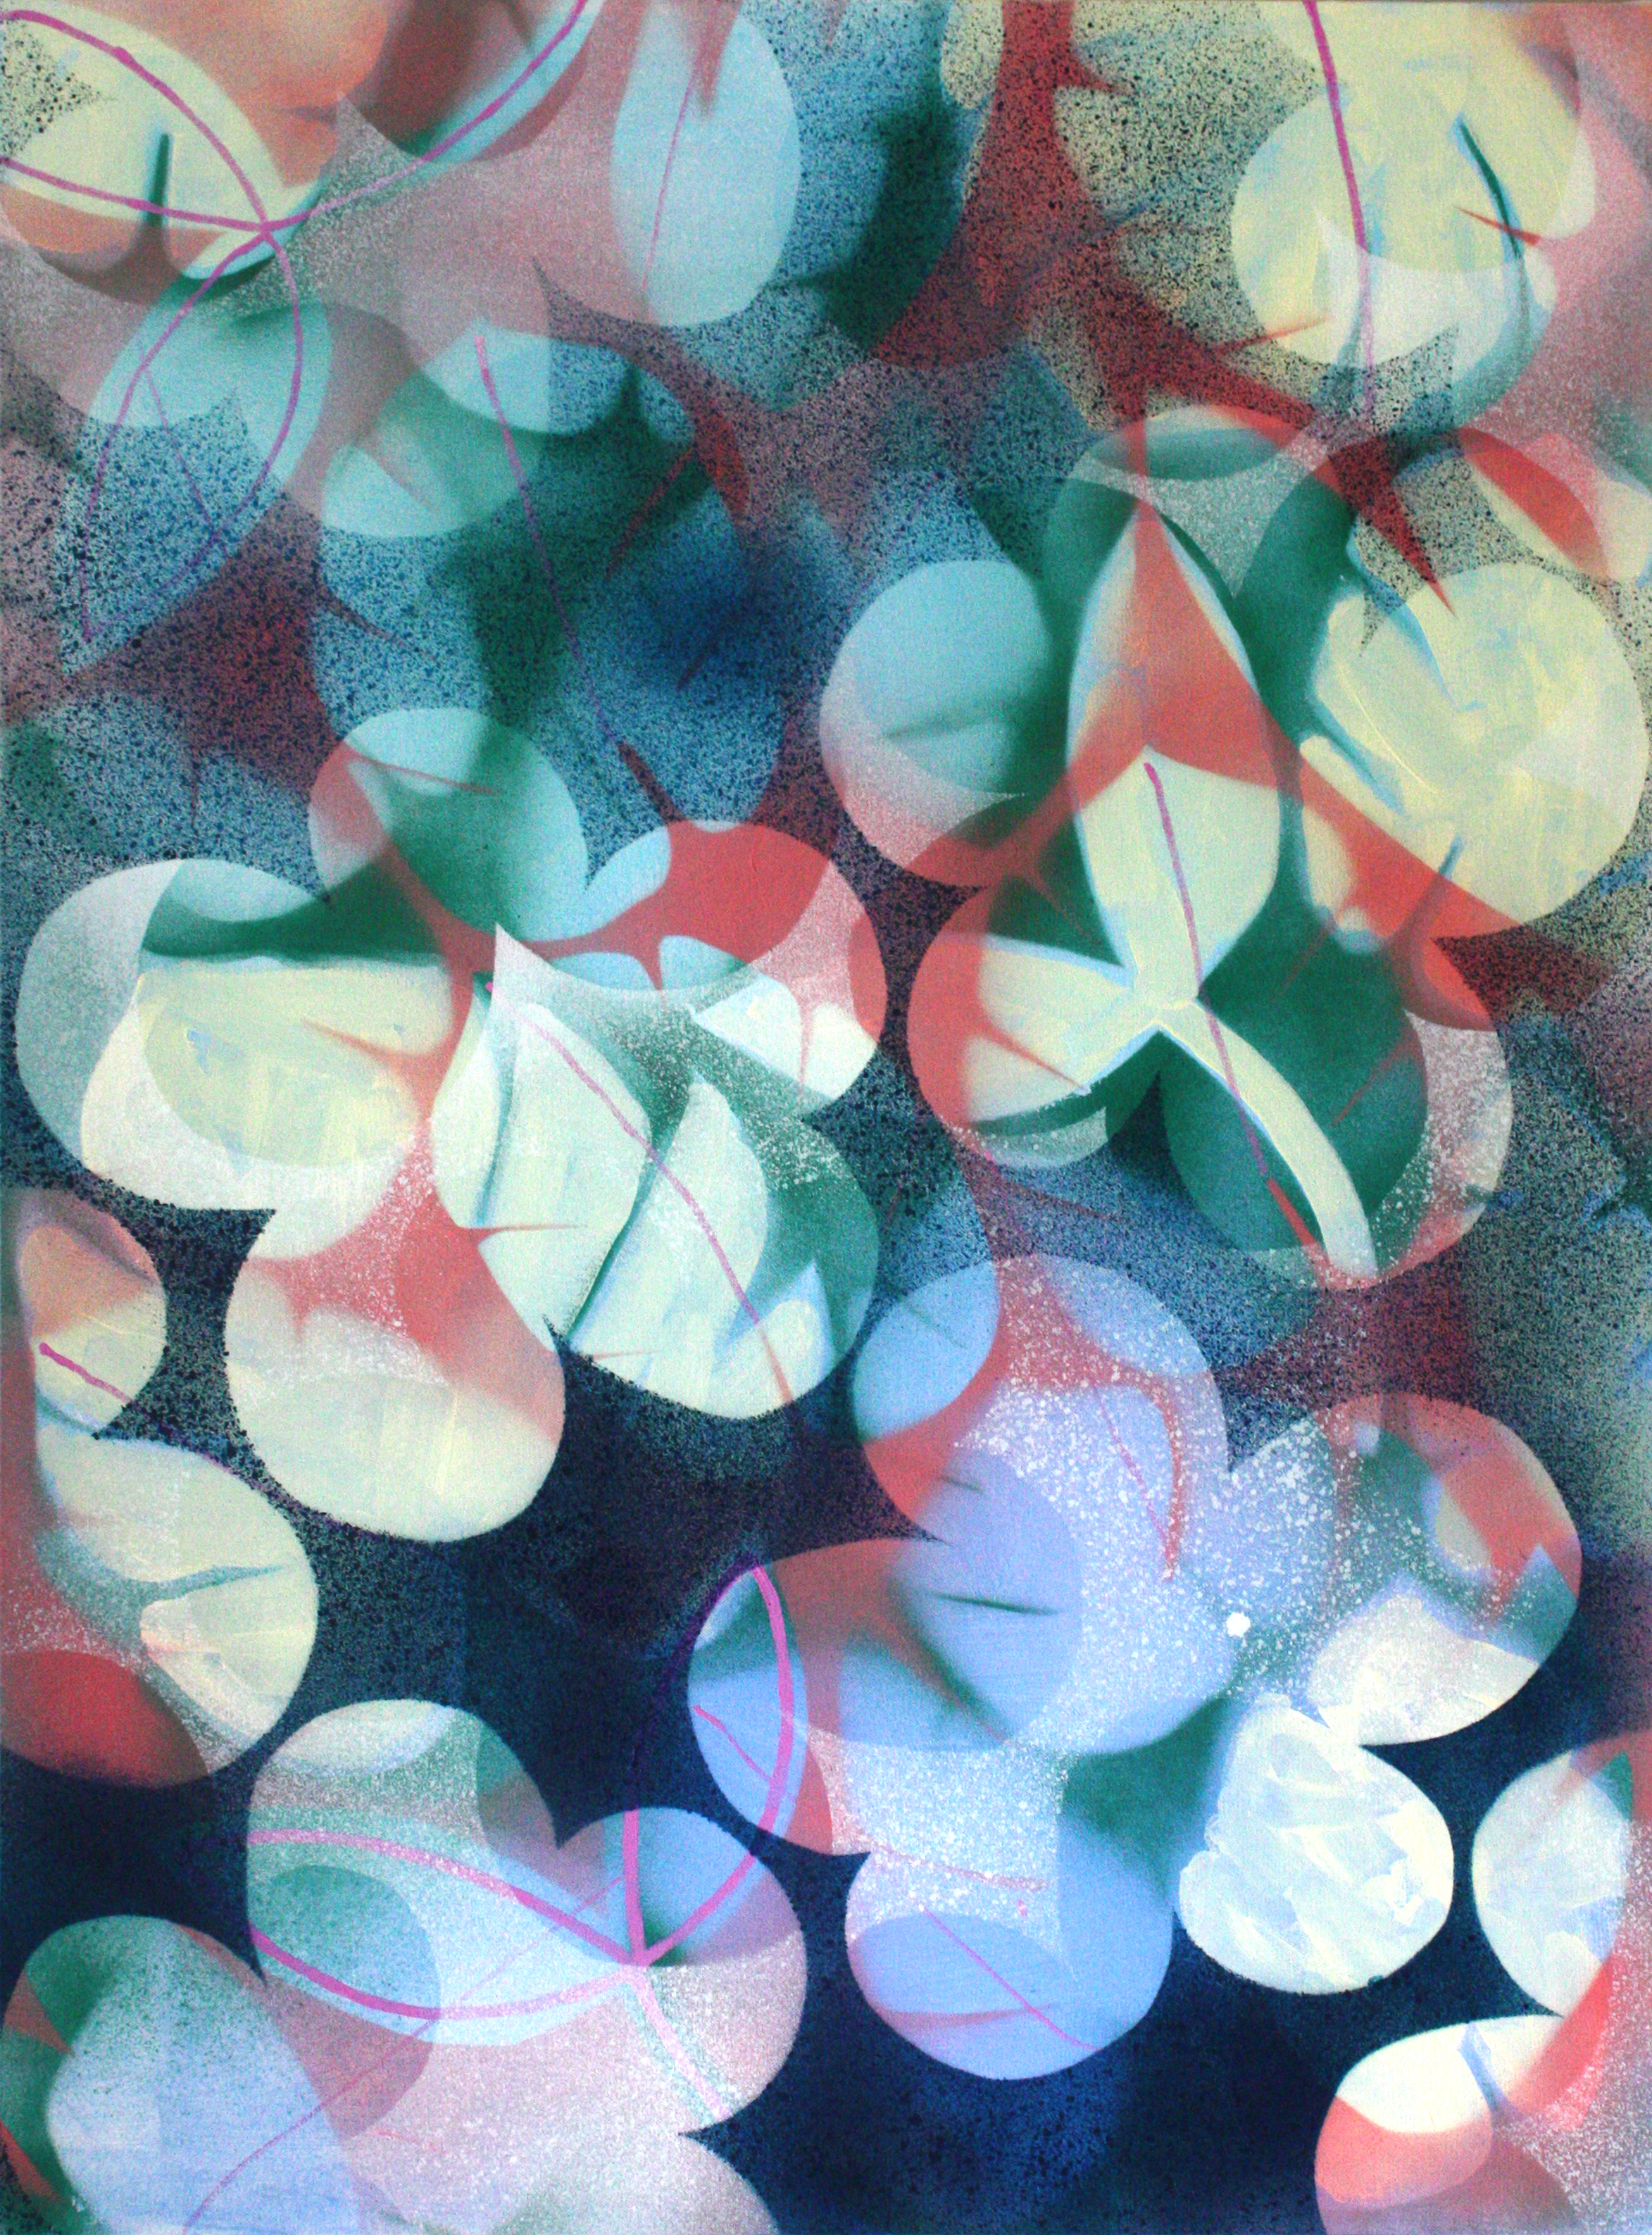 Flowers 2, 70 x 100cm, acrylic and pigment on canvas, 2019